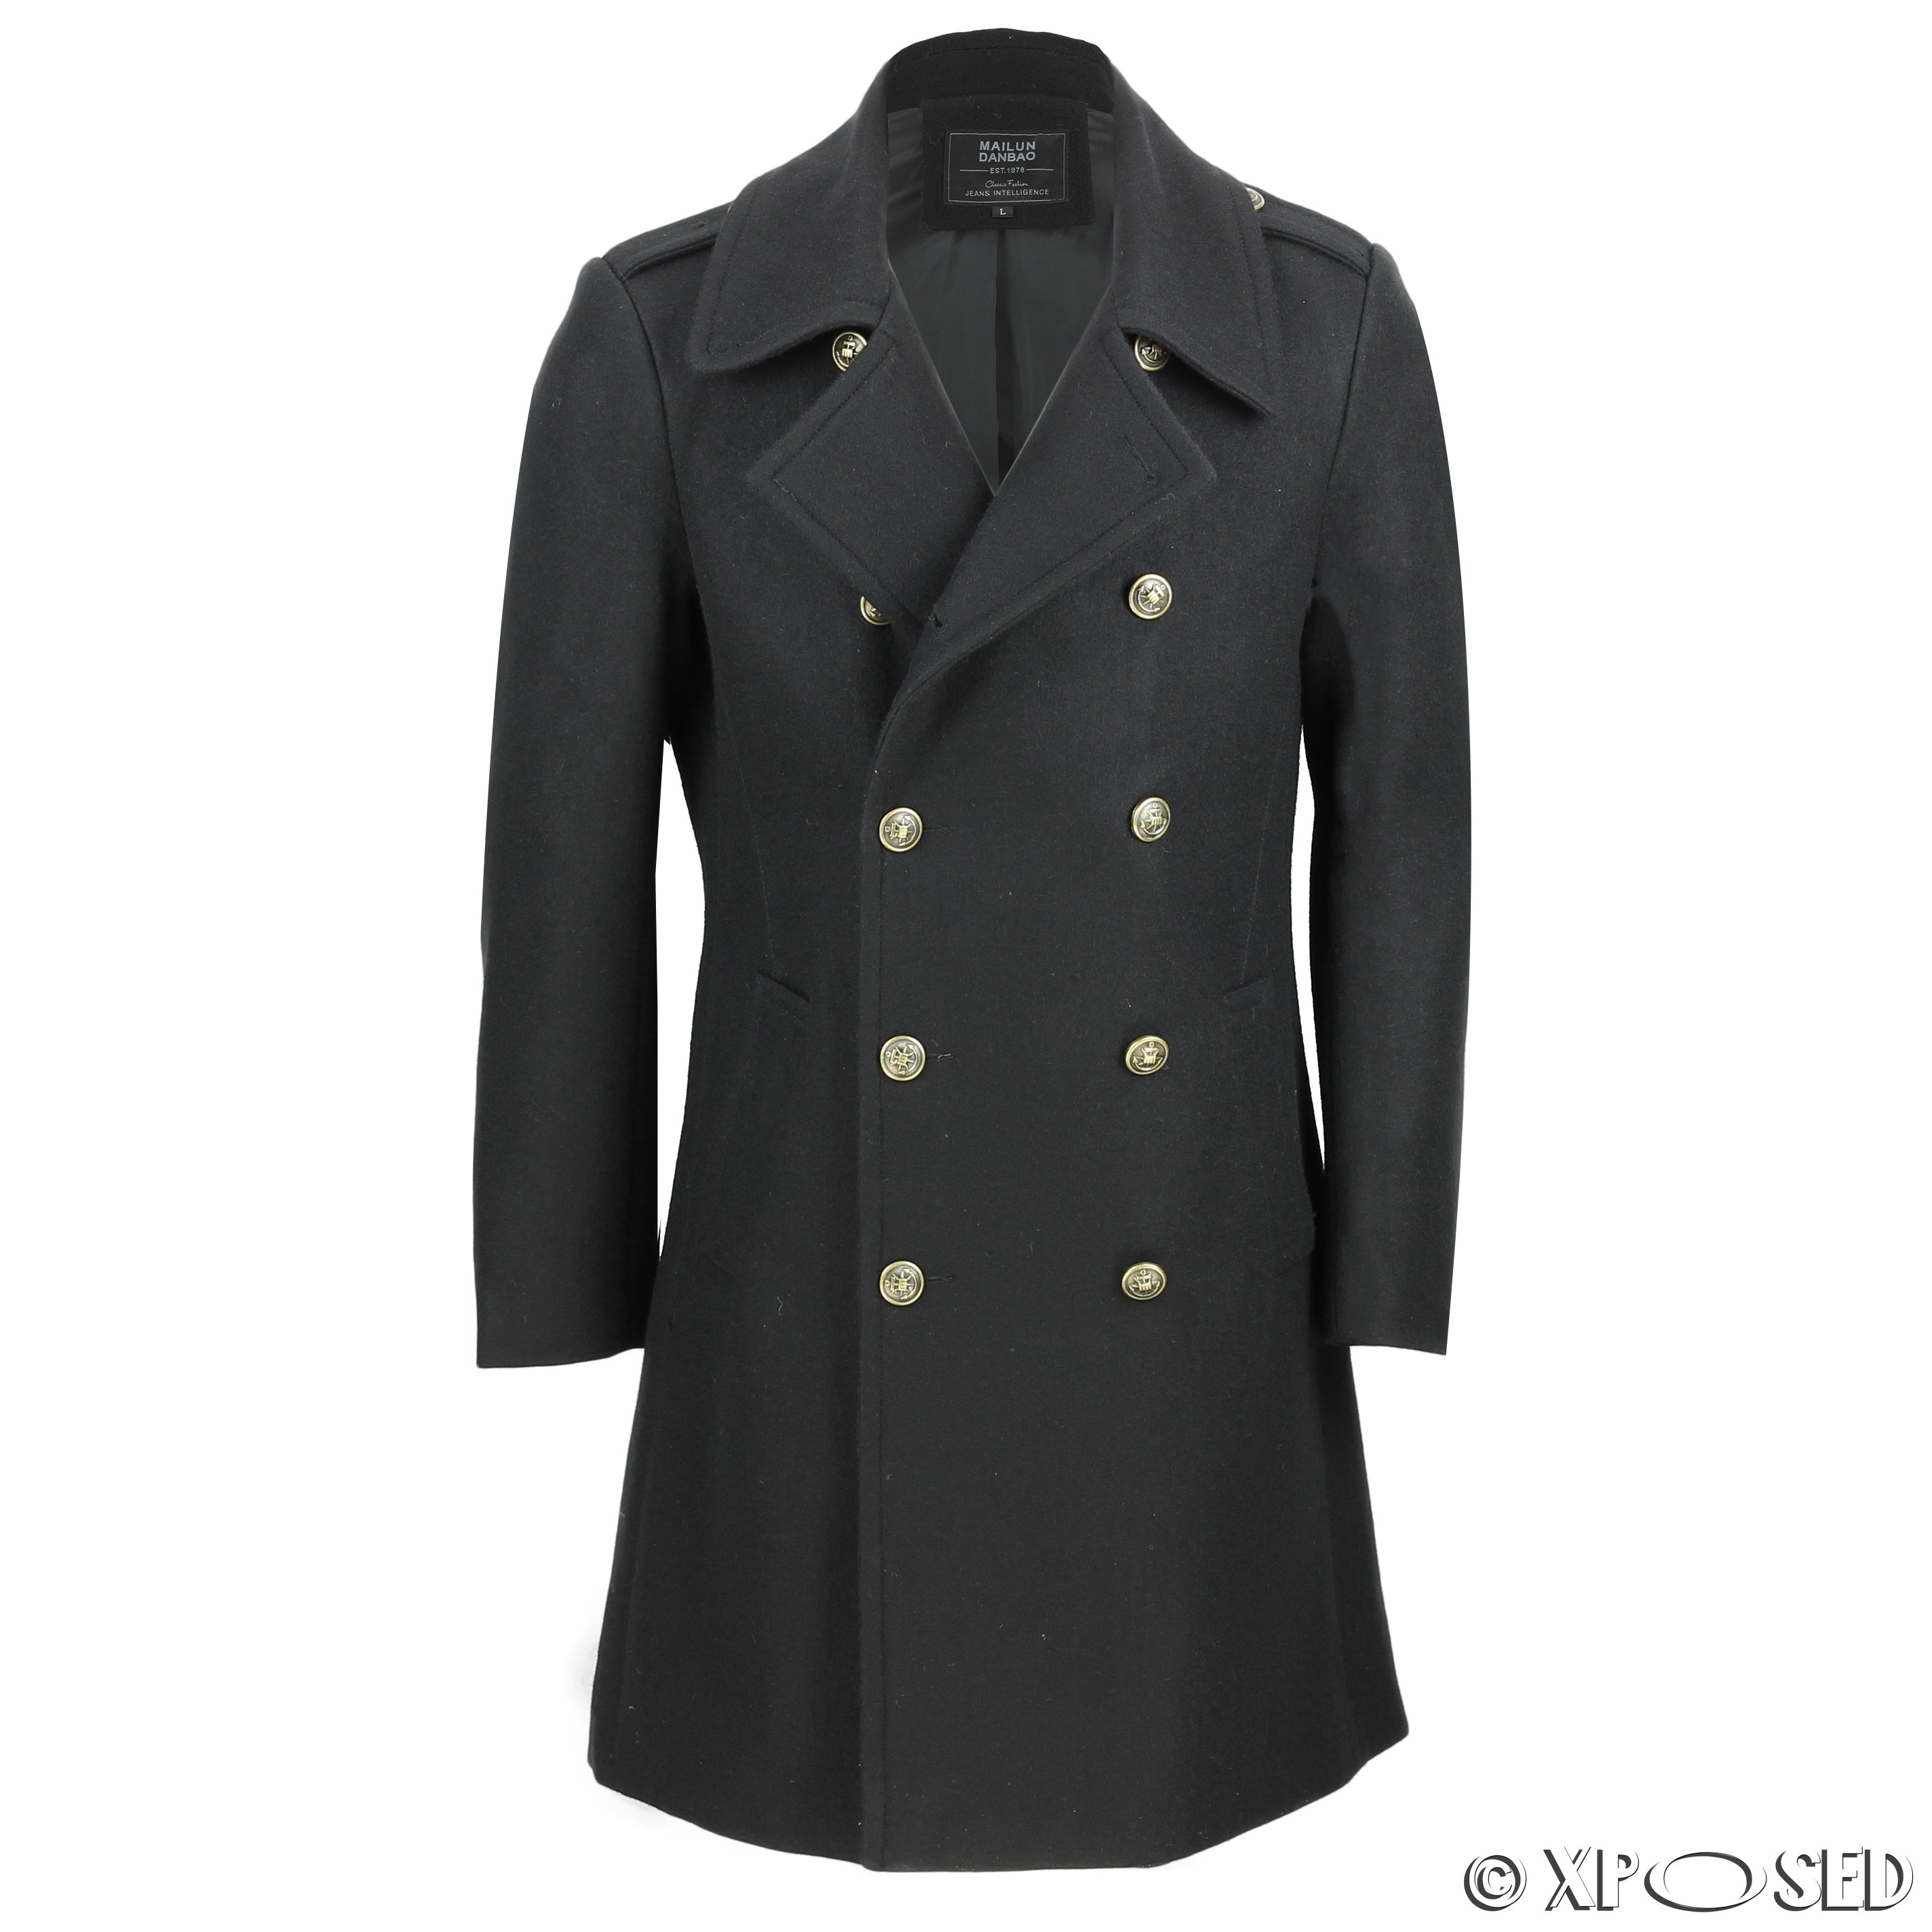 This coat is in very good condition. and very pretty on an person. but i would consider my self. and very soft. it is black! about a 12 or 14 size and i think it fits amazing.